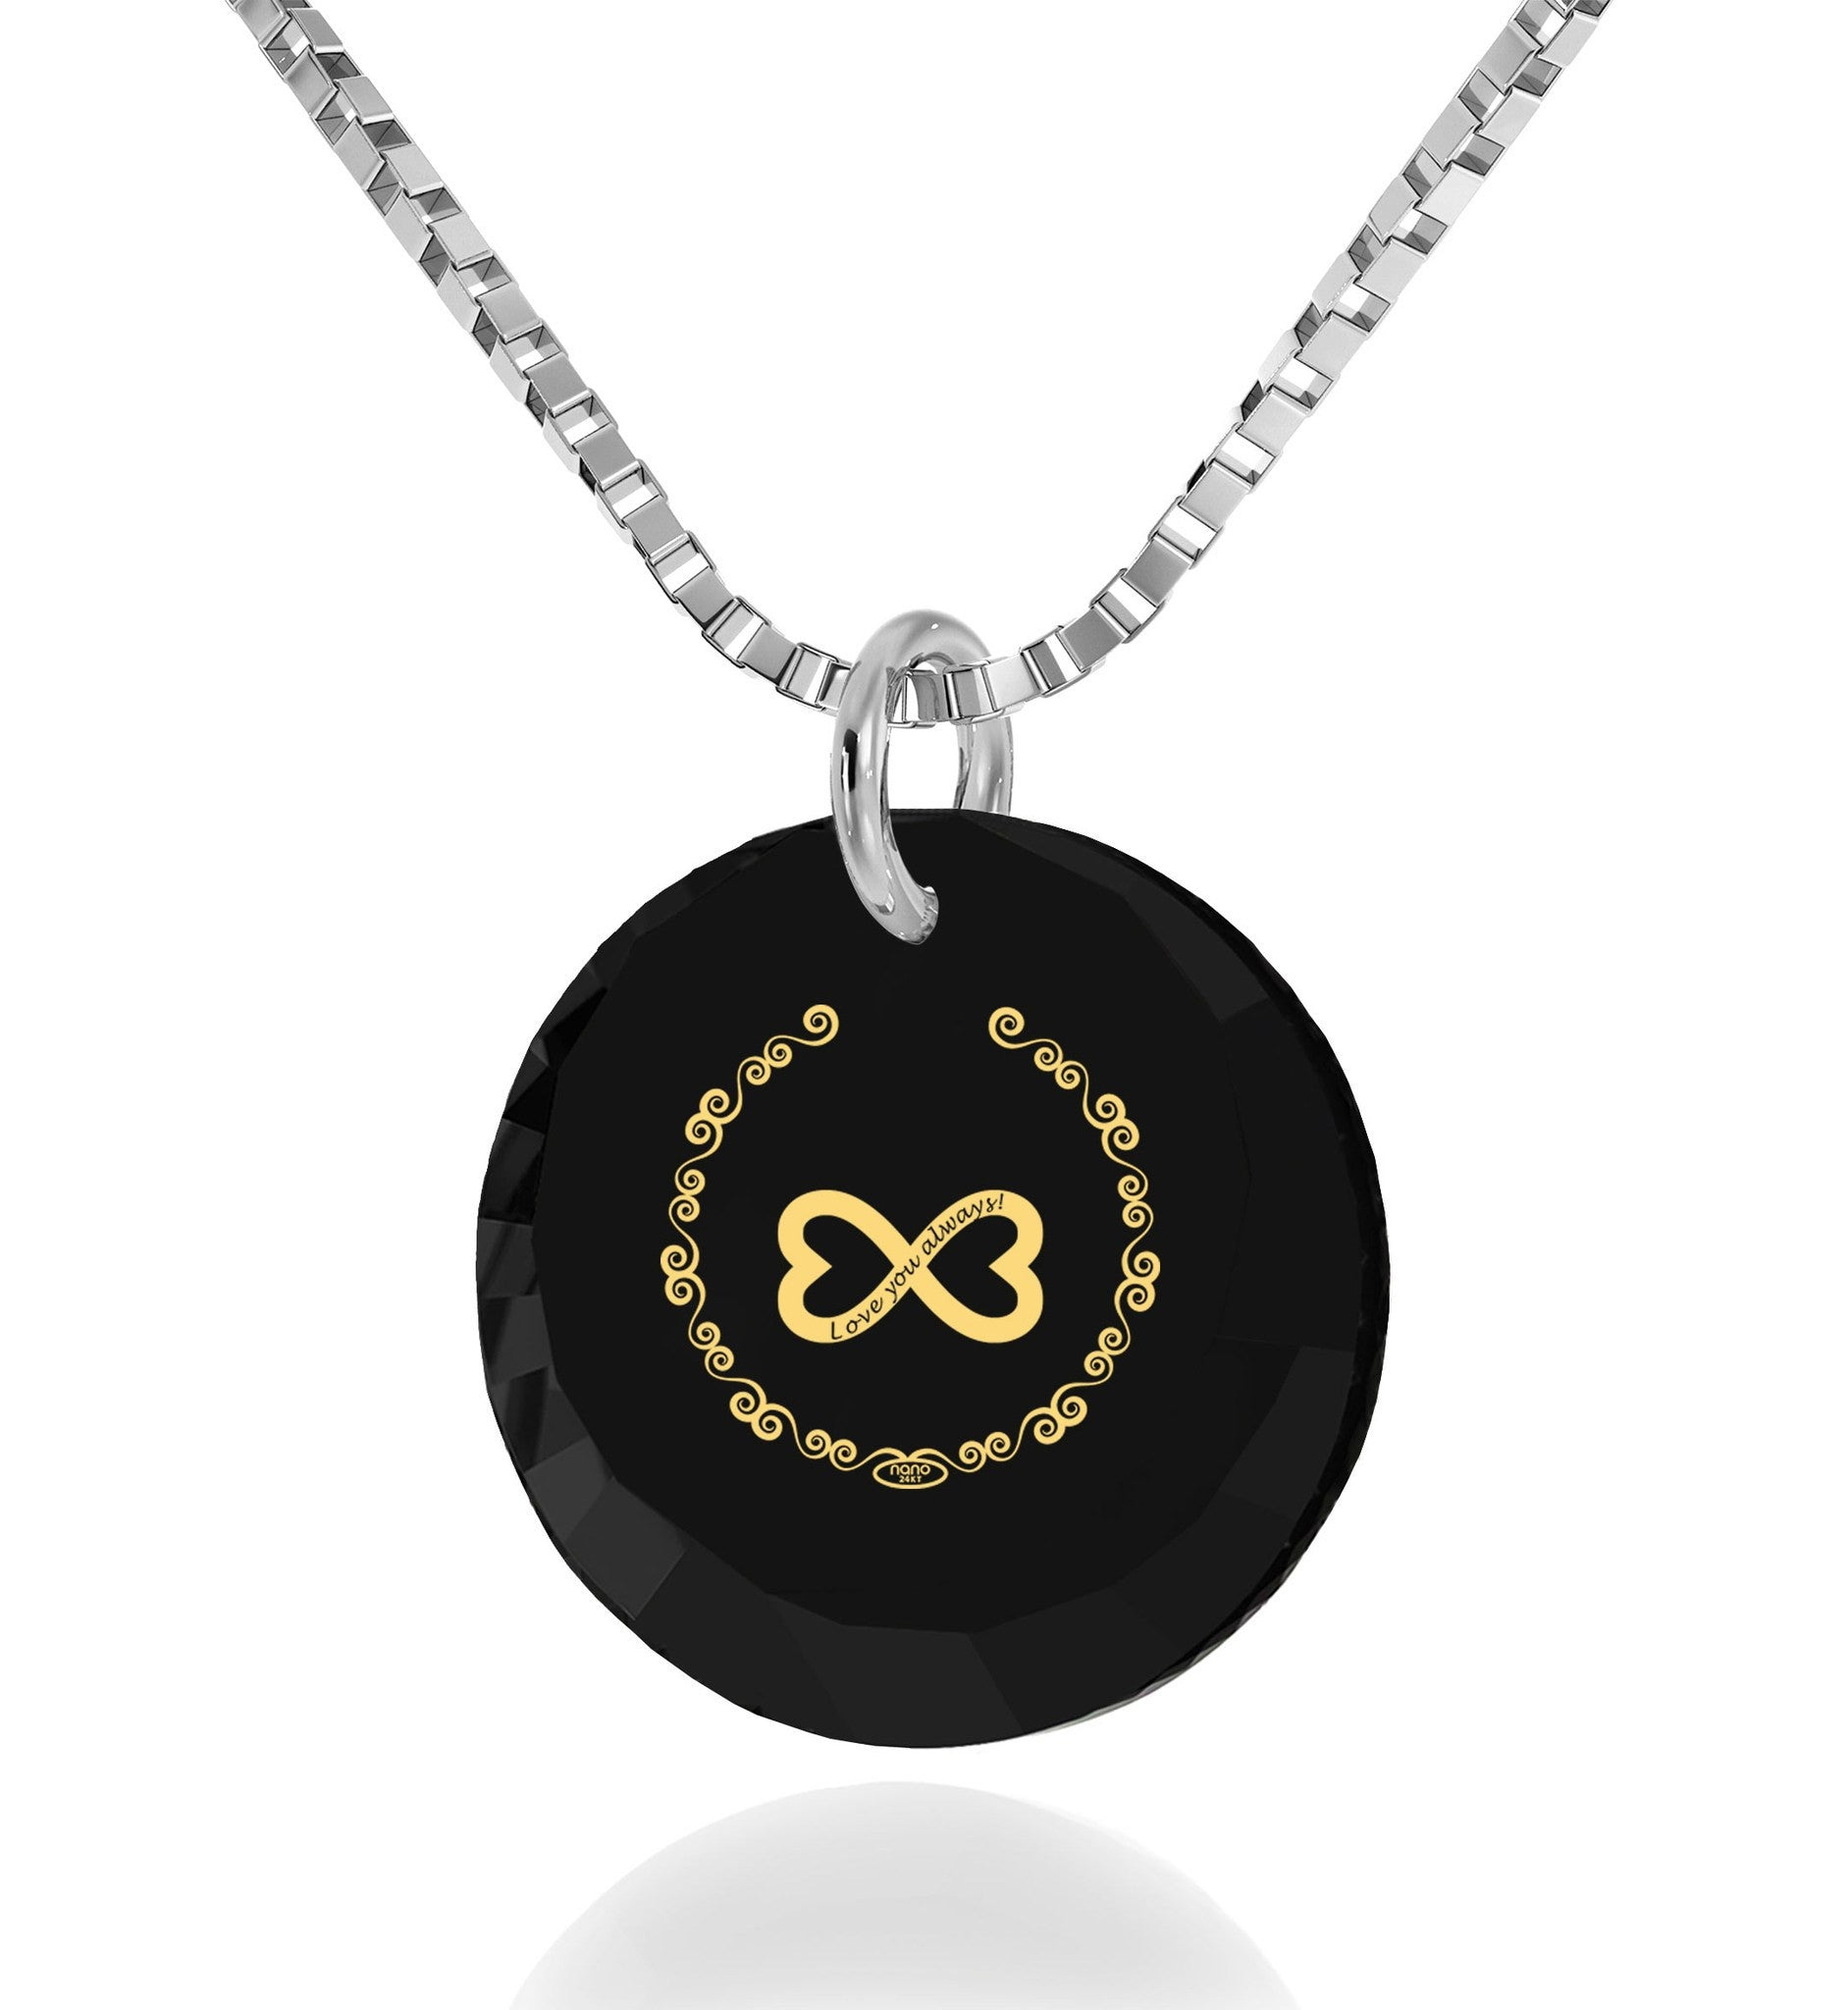 "Christmas Ideas for Girlfriend, ""Love You Always"" Inscribed on Black Stone, Gifts for Women Friends, Nano Jewelry"